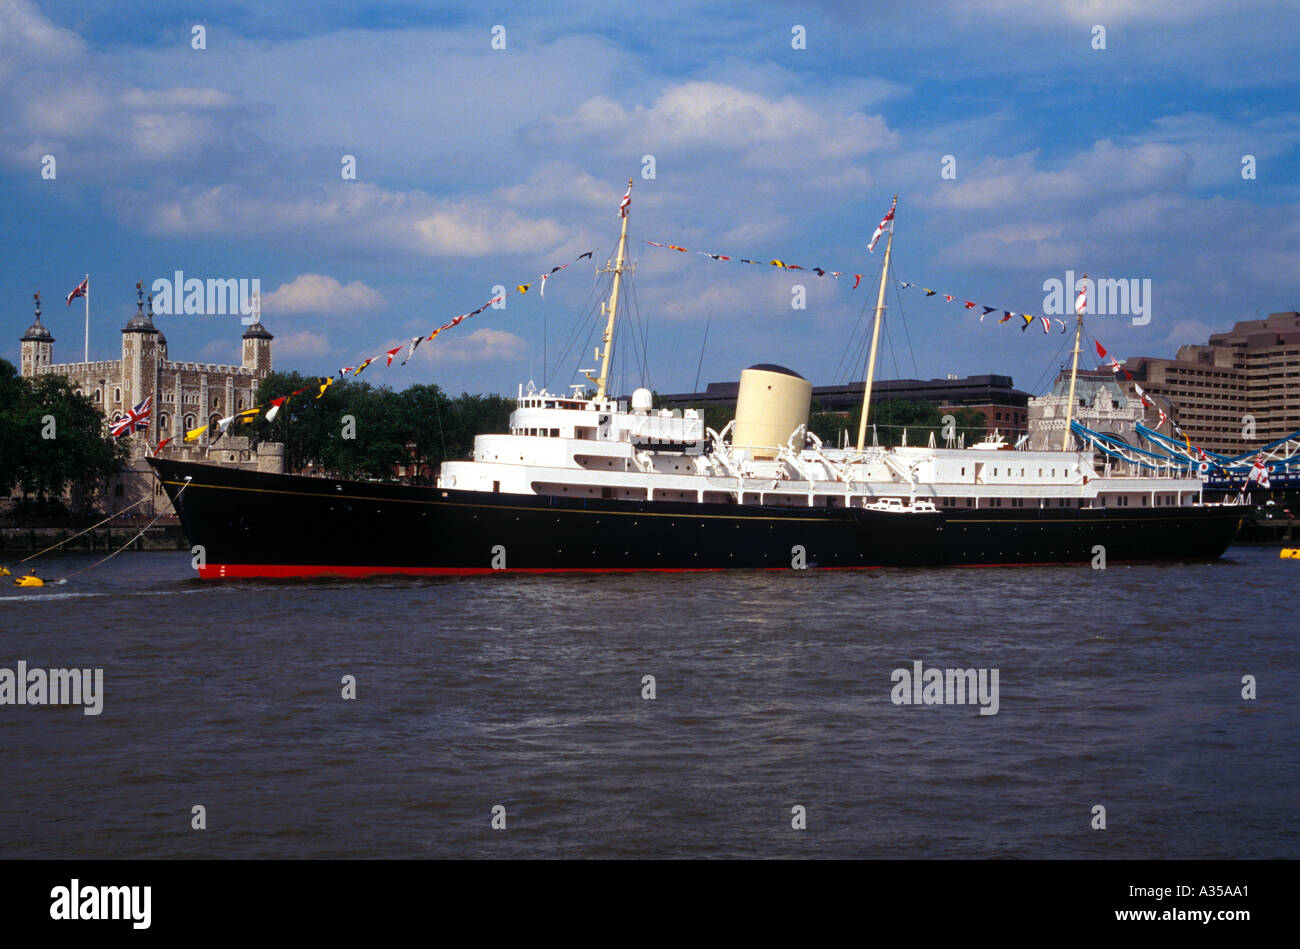 Royal Yacht Britannia moored on the River Thames with the Tower of London in the background England 1994 - Stock Image